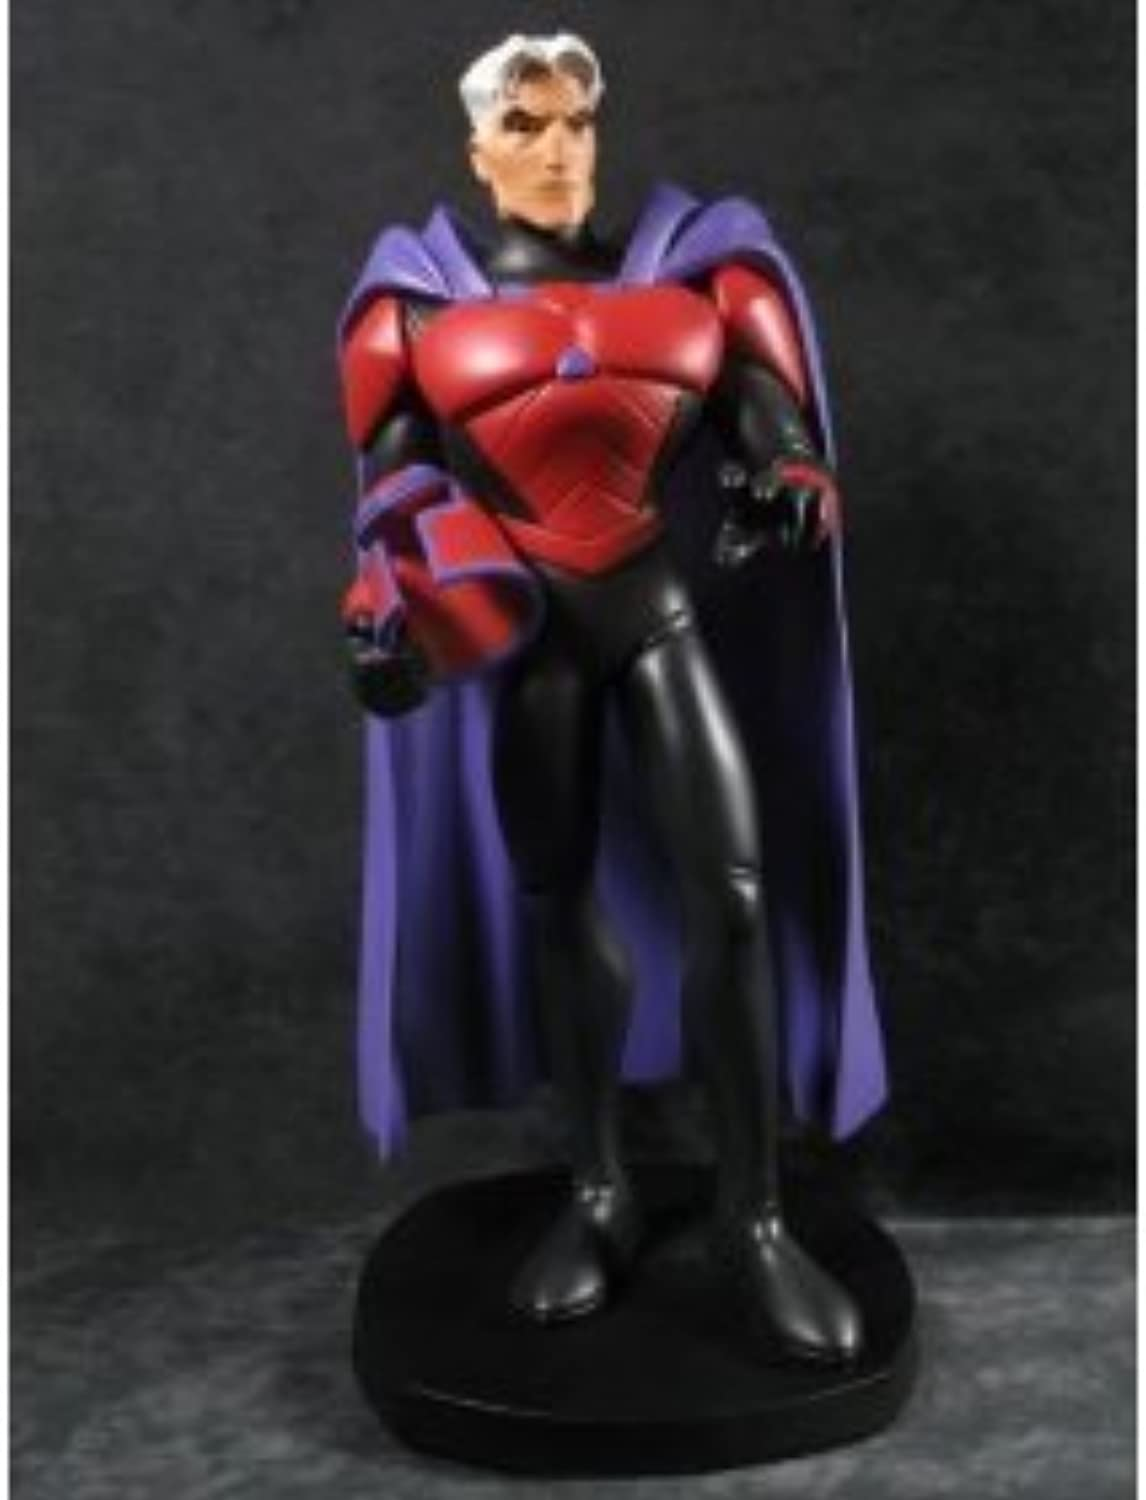 Con 100% de calidad y servicio de% 100. X-Men Magneto Maquette , Hard Hero Series Limited Edition Figura Figura Figura (2500 Ever Made) by Hard Hero  ahorra hasta un 70%